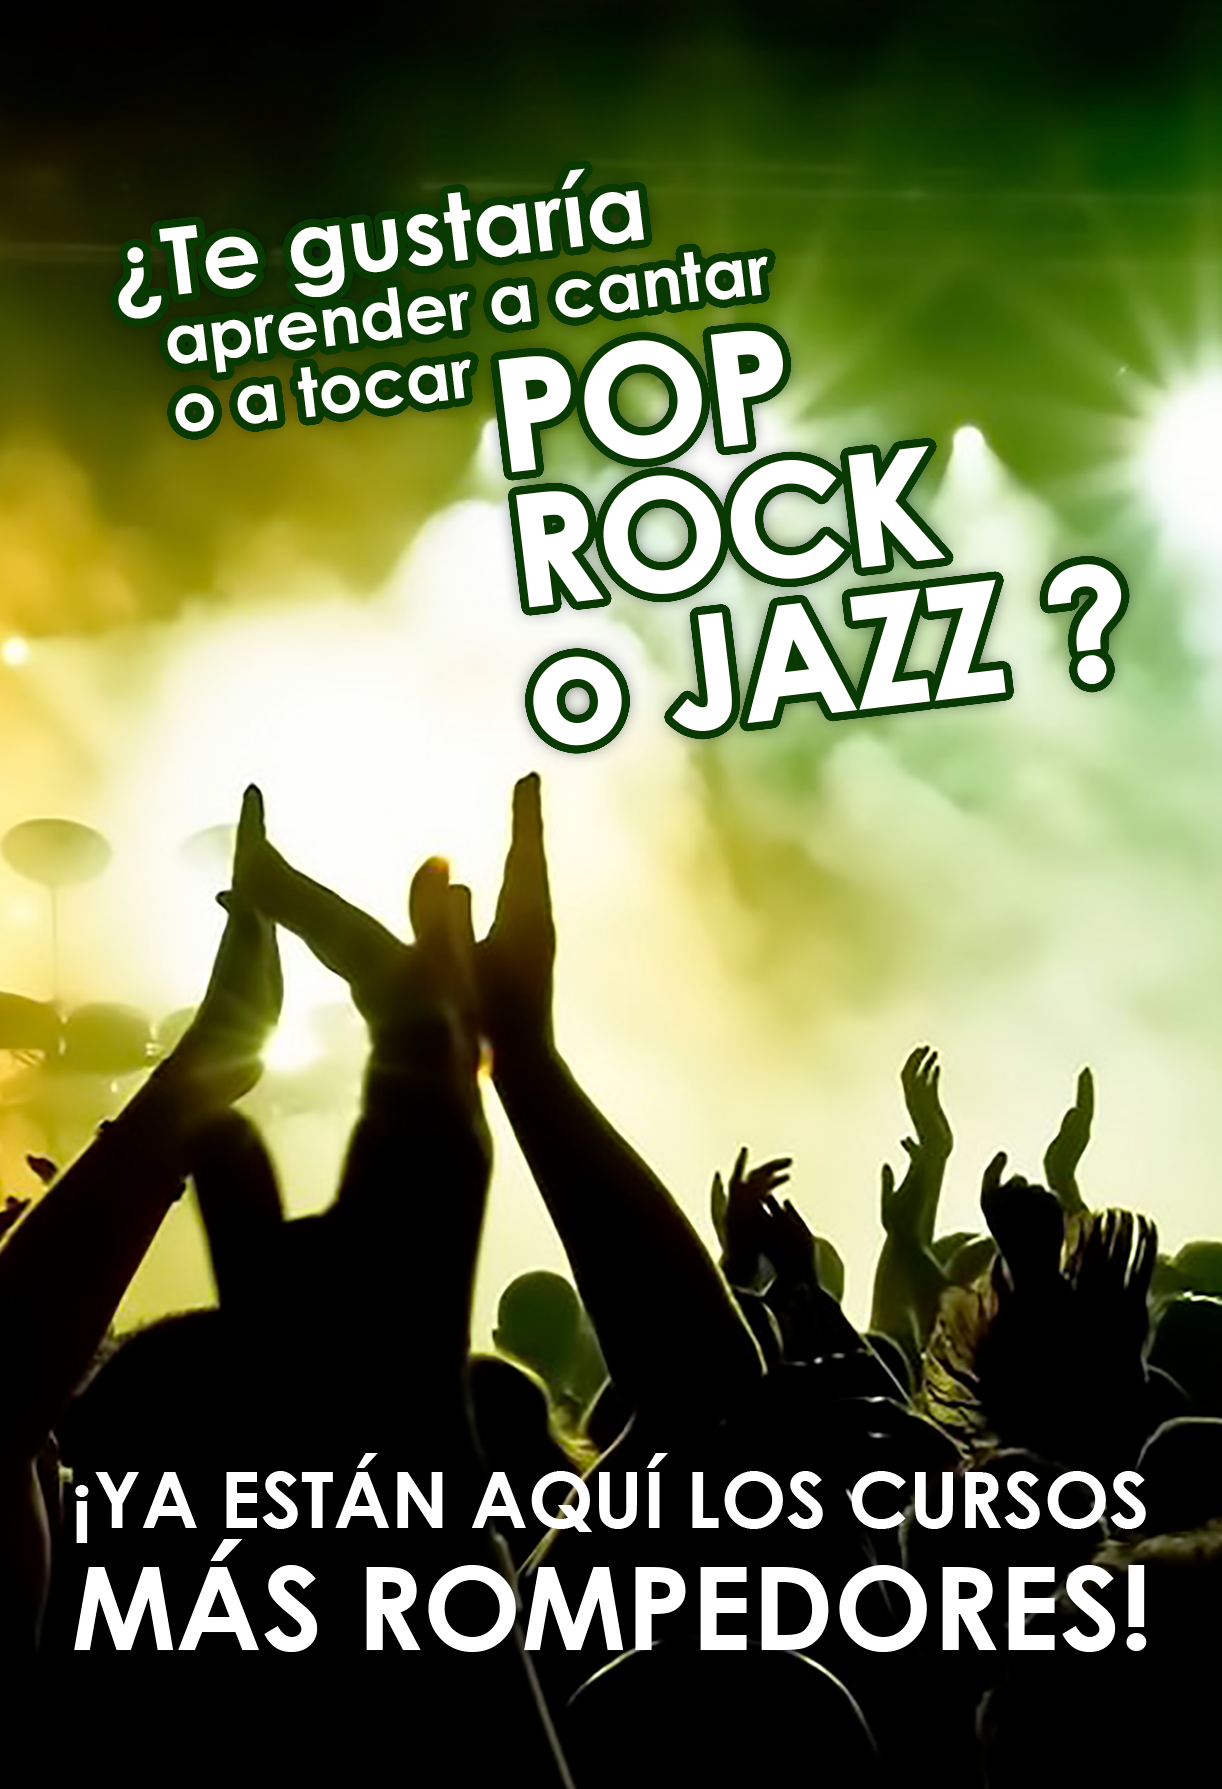 jazz, pop, rock, cantar